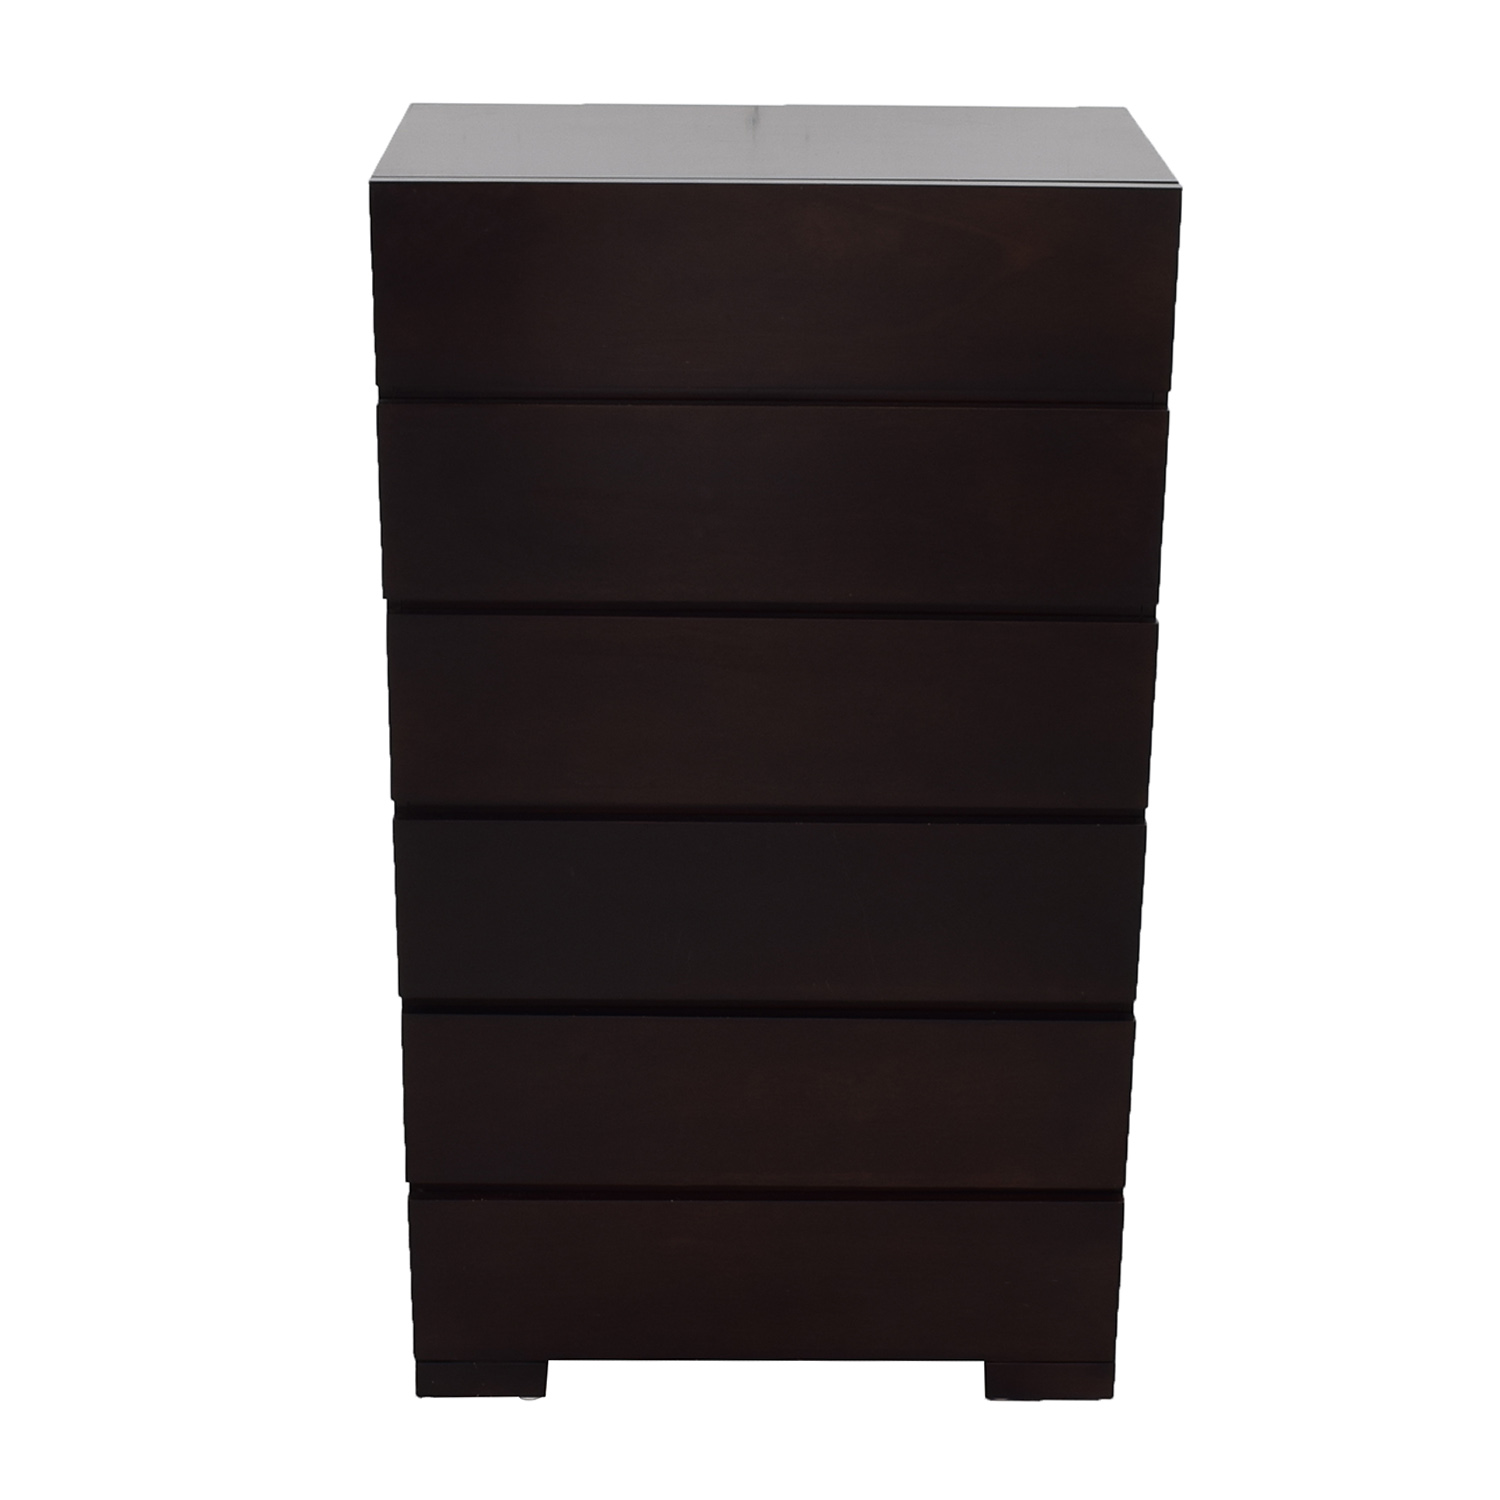 Ligna Furniture Ligna Furniture Six Drawer Dresser discount